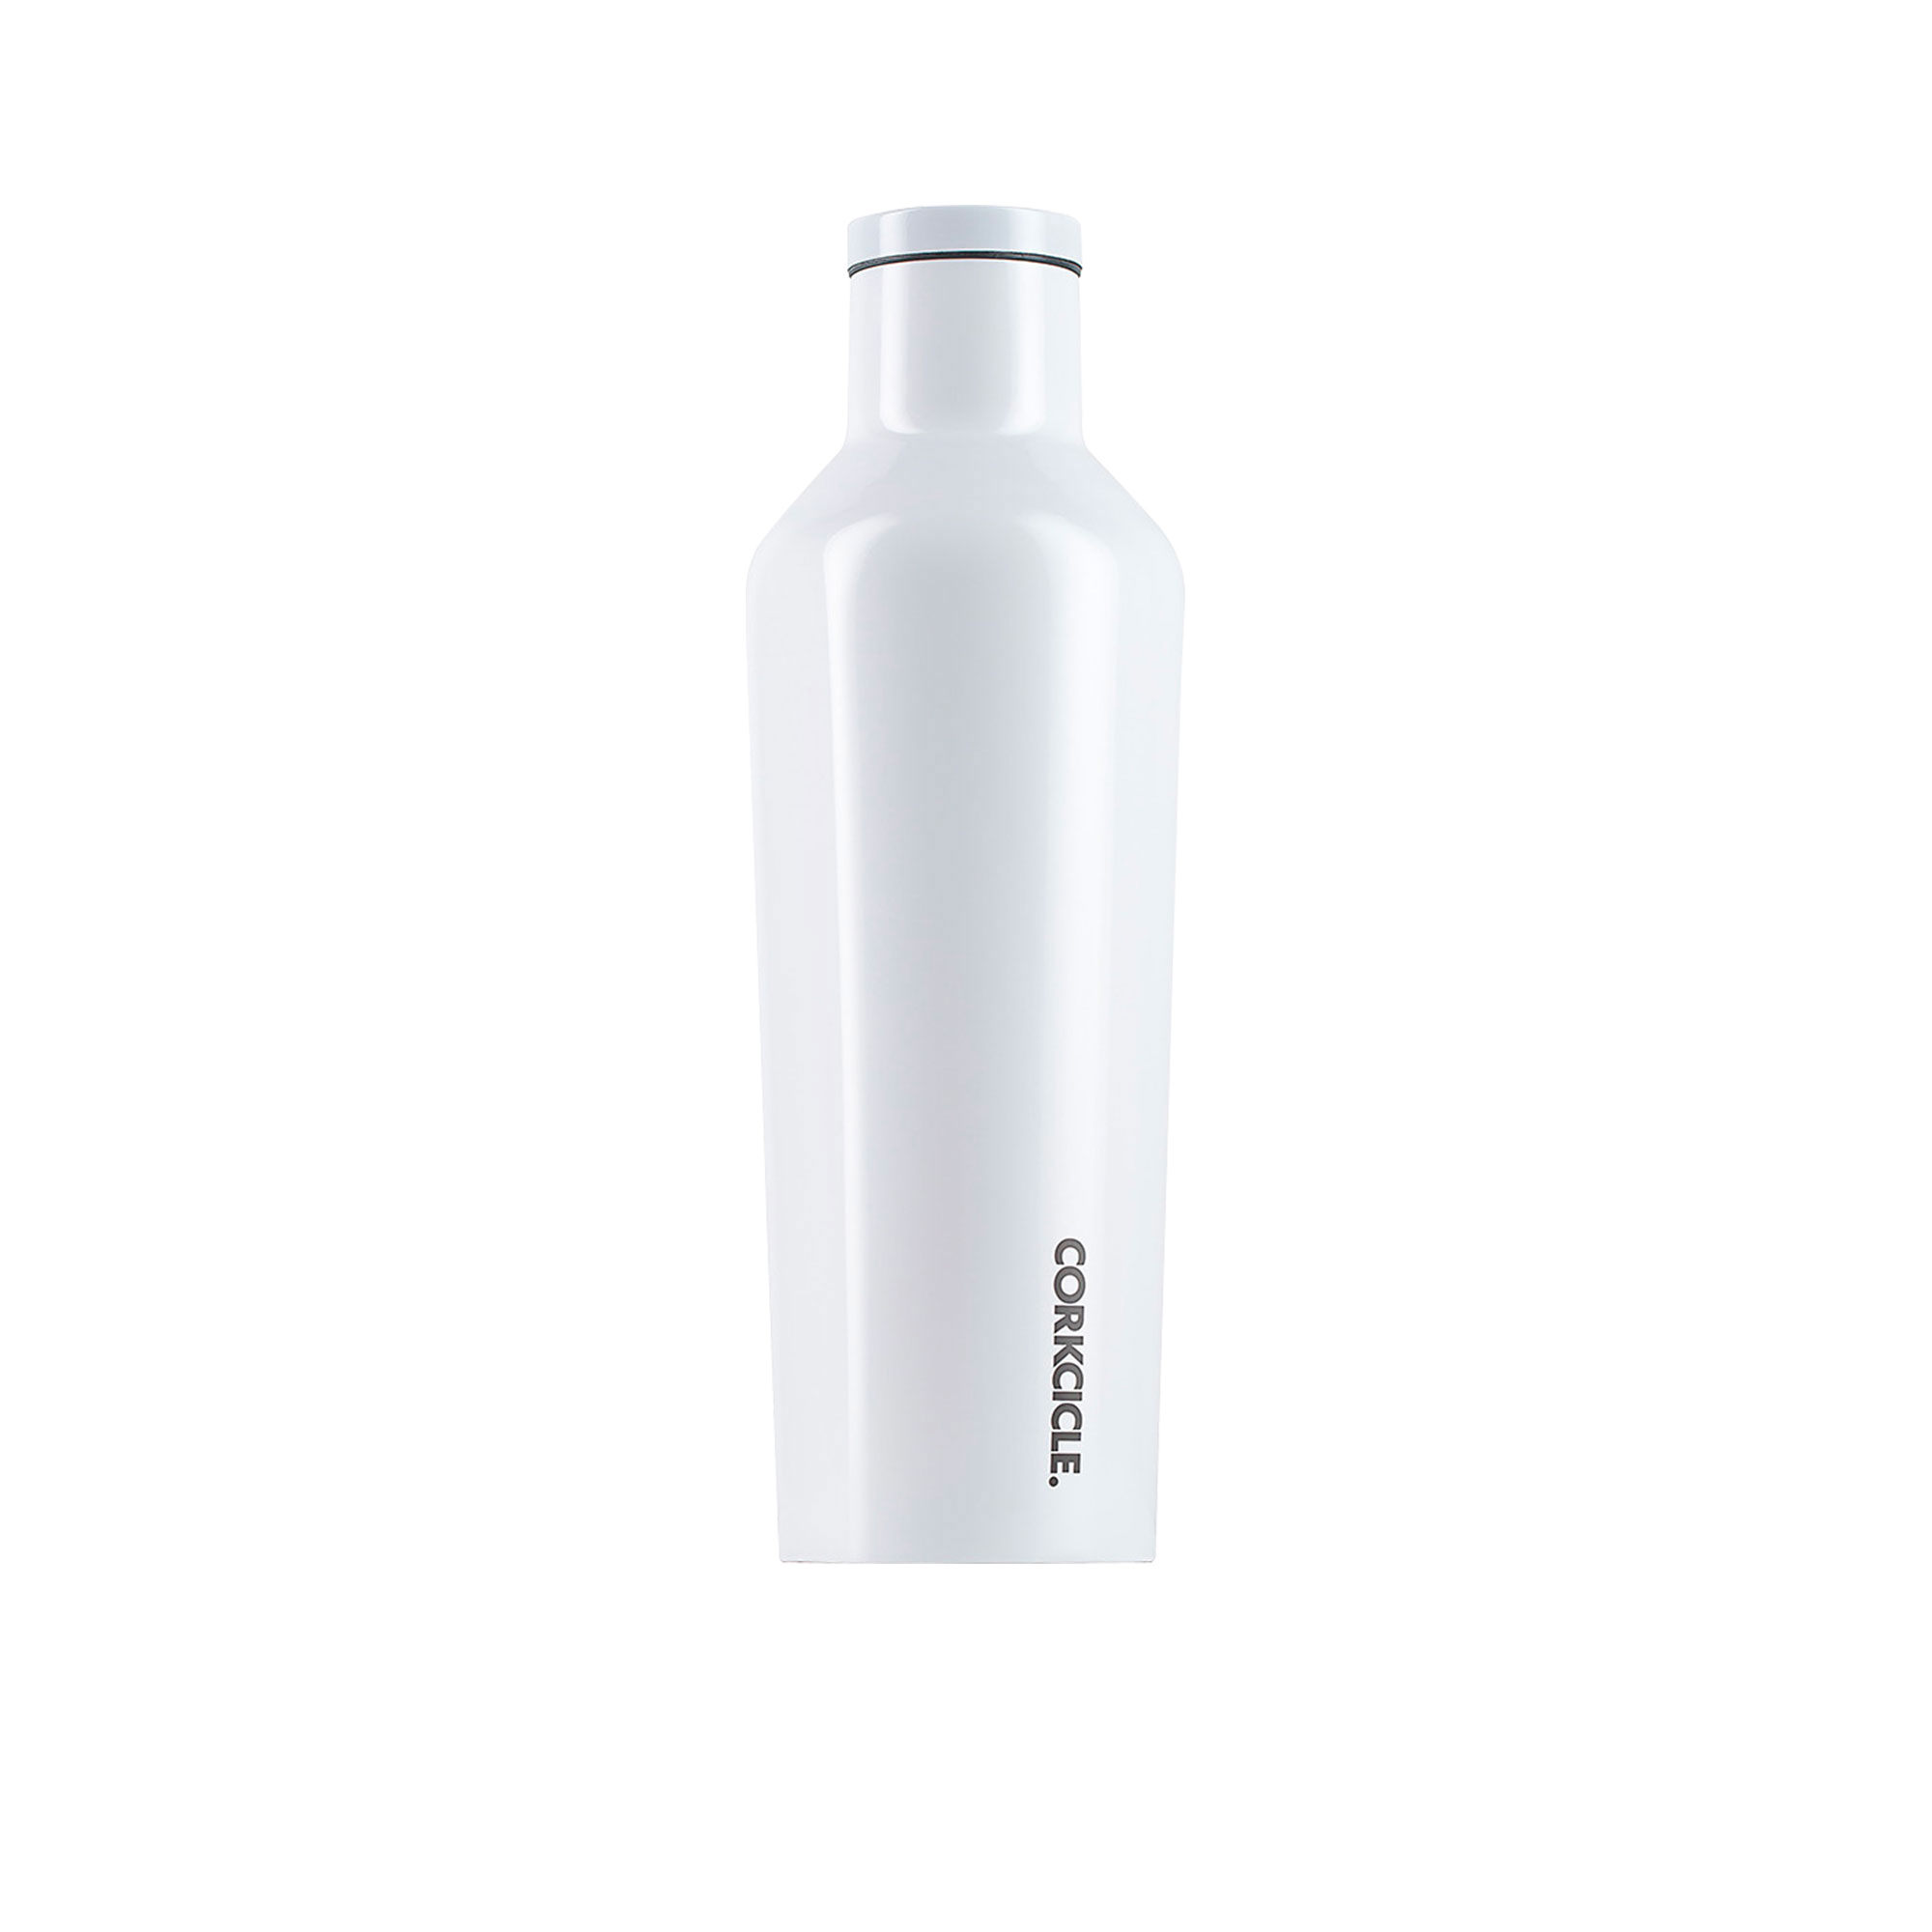 Corkcicle Dipped Canteen Insulated Drink Bottle 475ml Modernist White